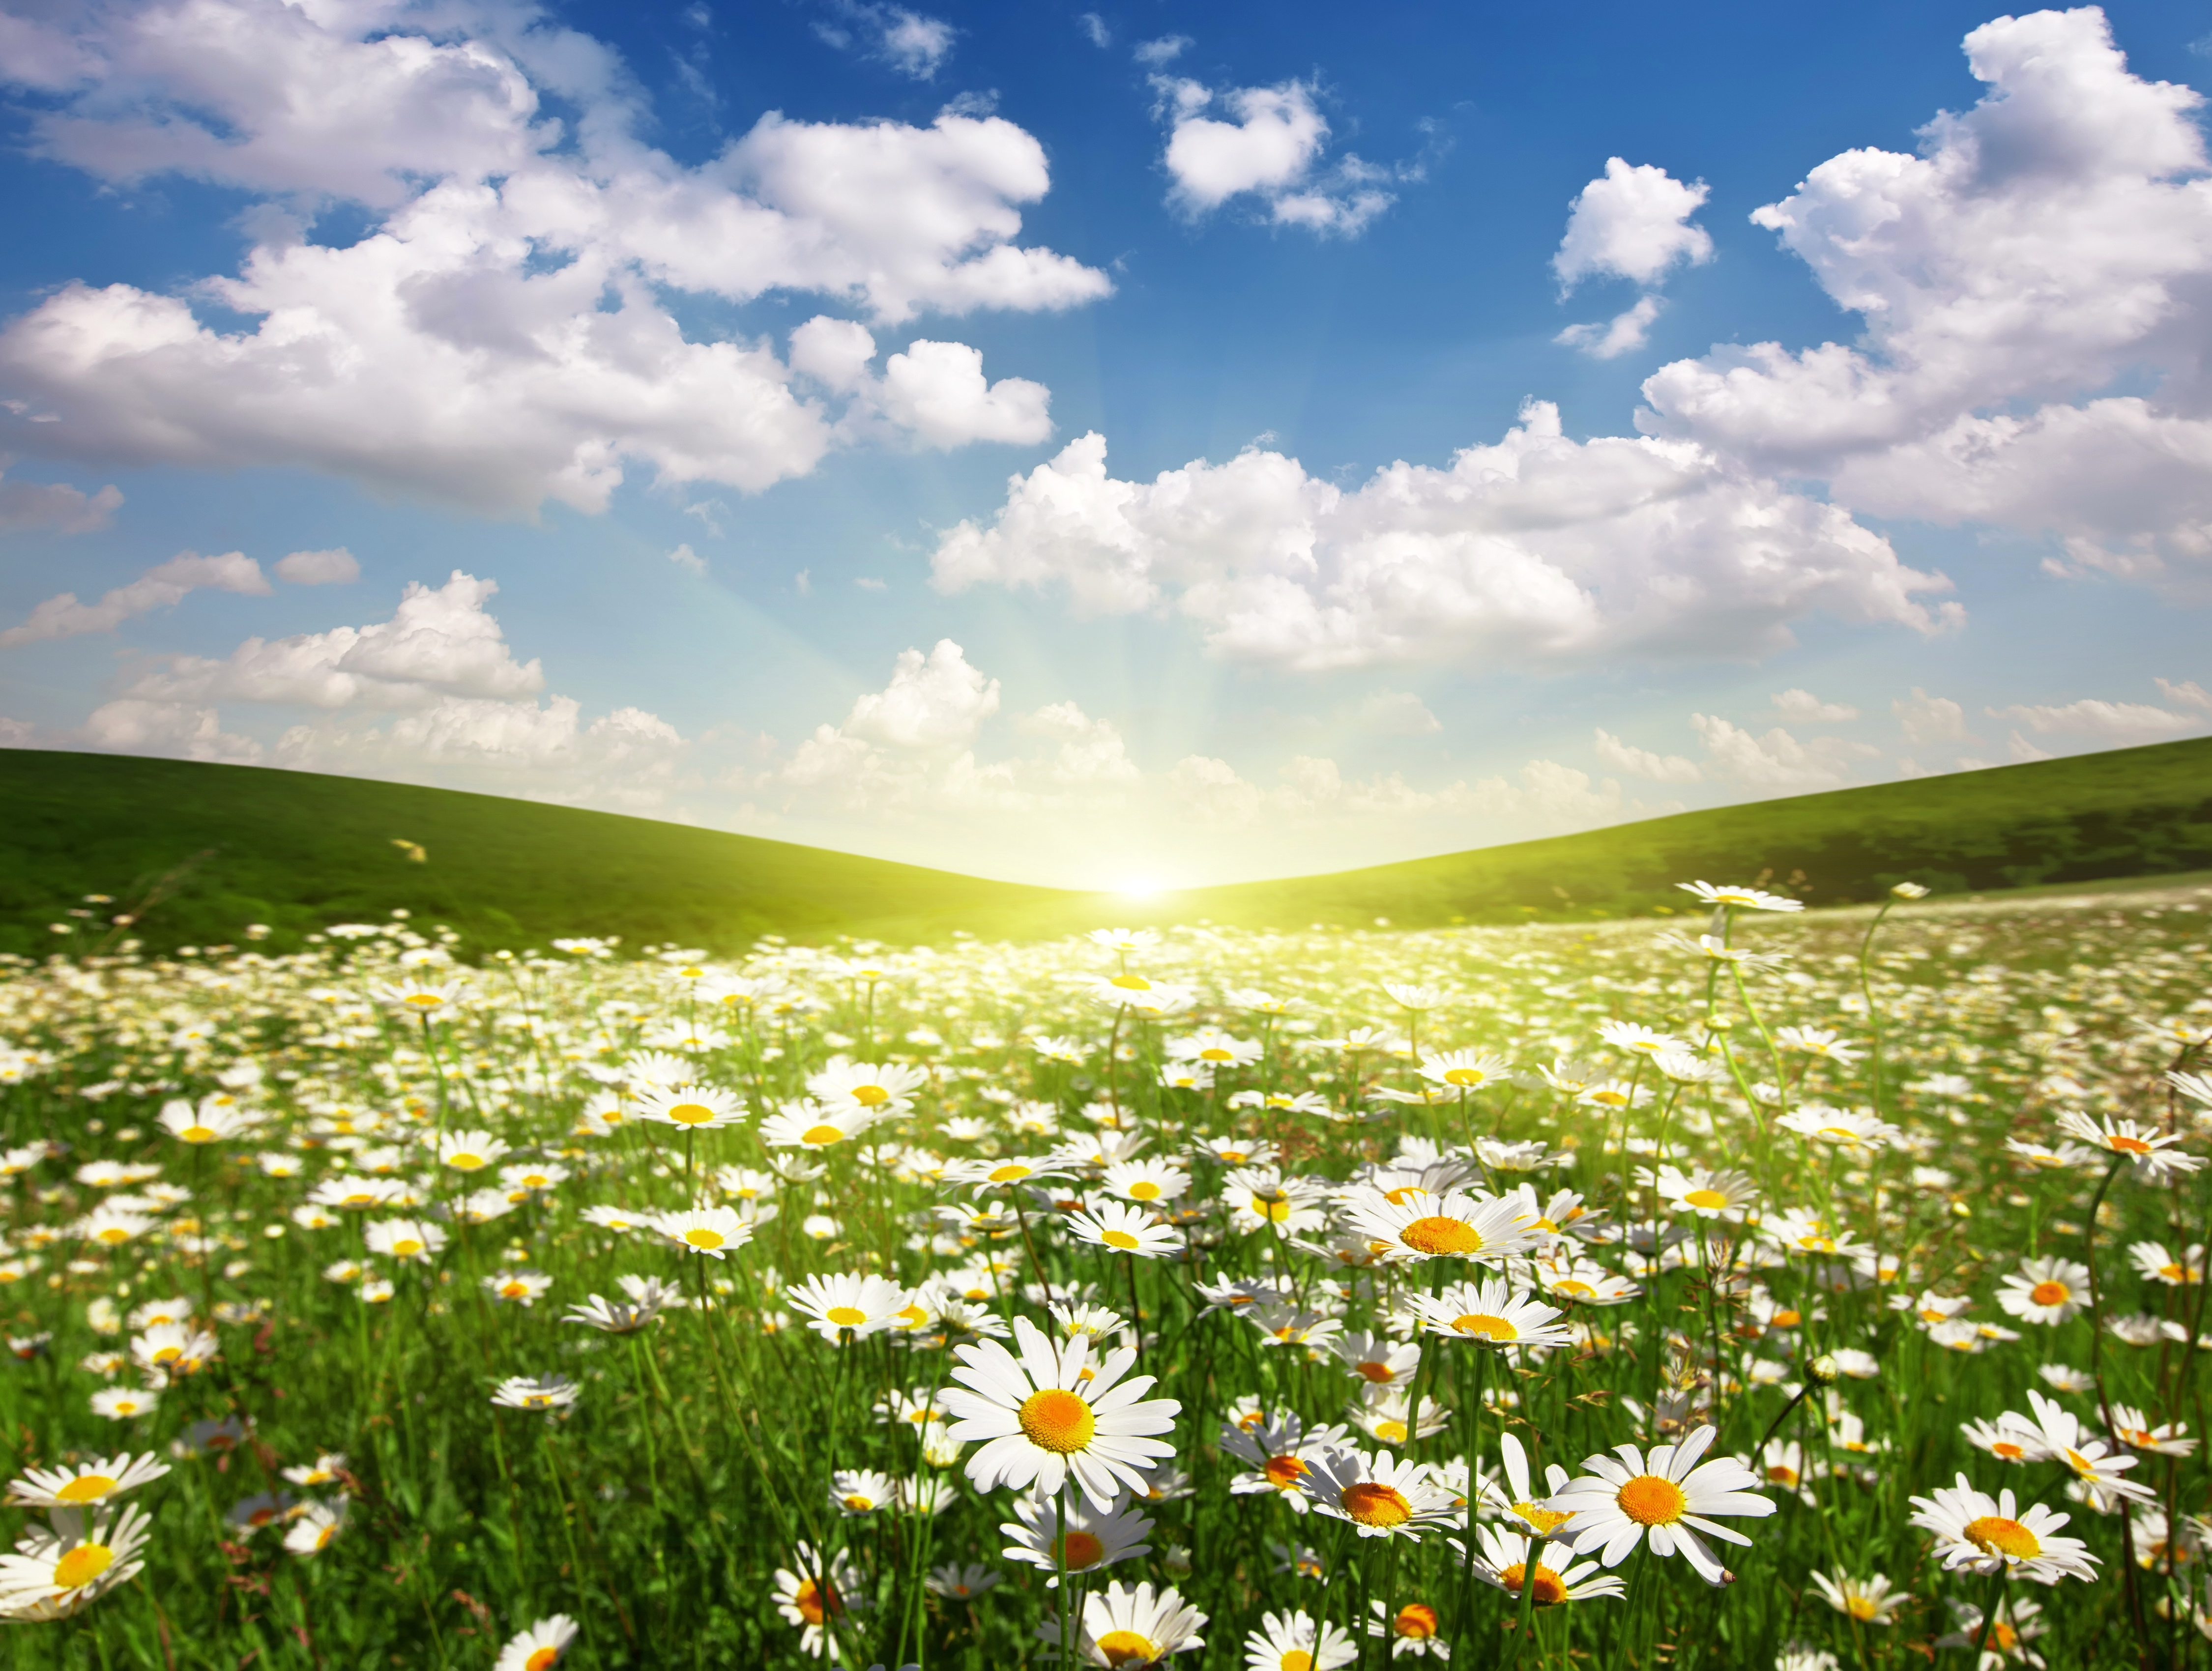 Sunrise over Field of Daisies 4k Ultra HD Wallpaper and ... Field Of Daisies